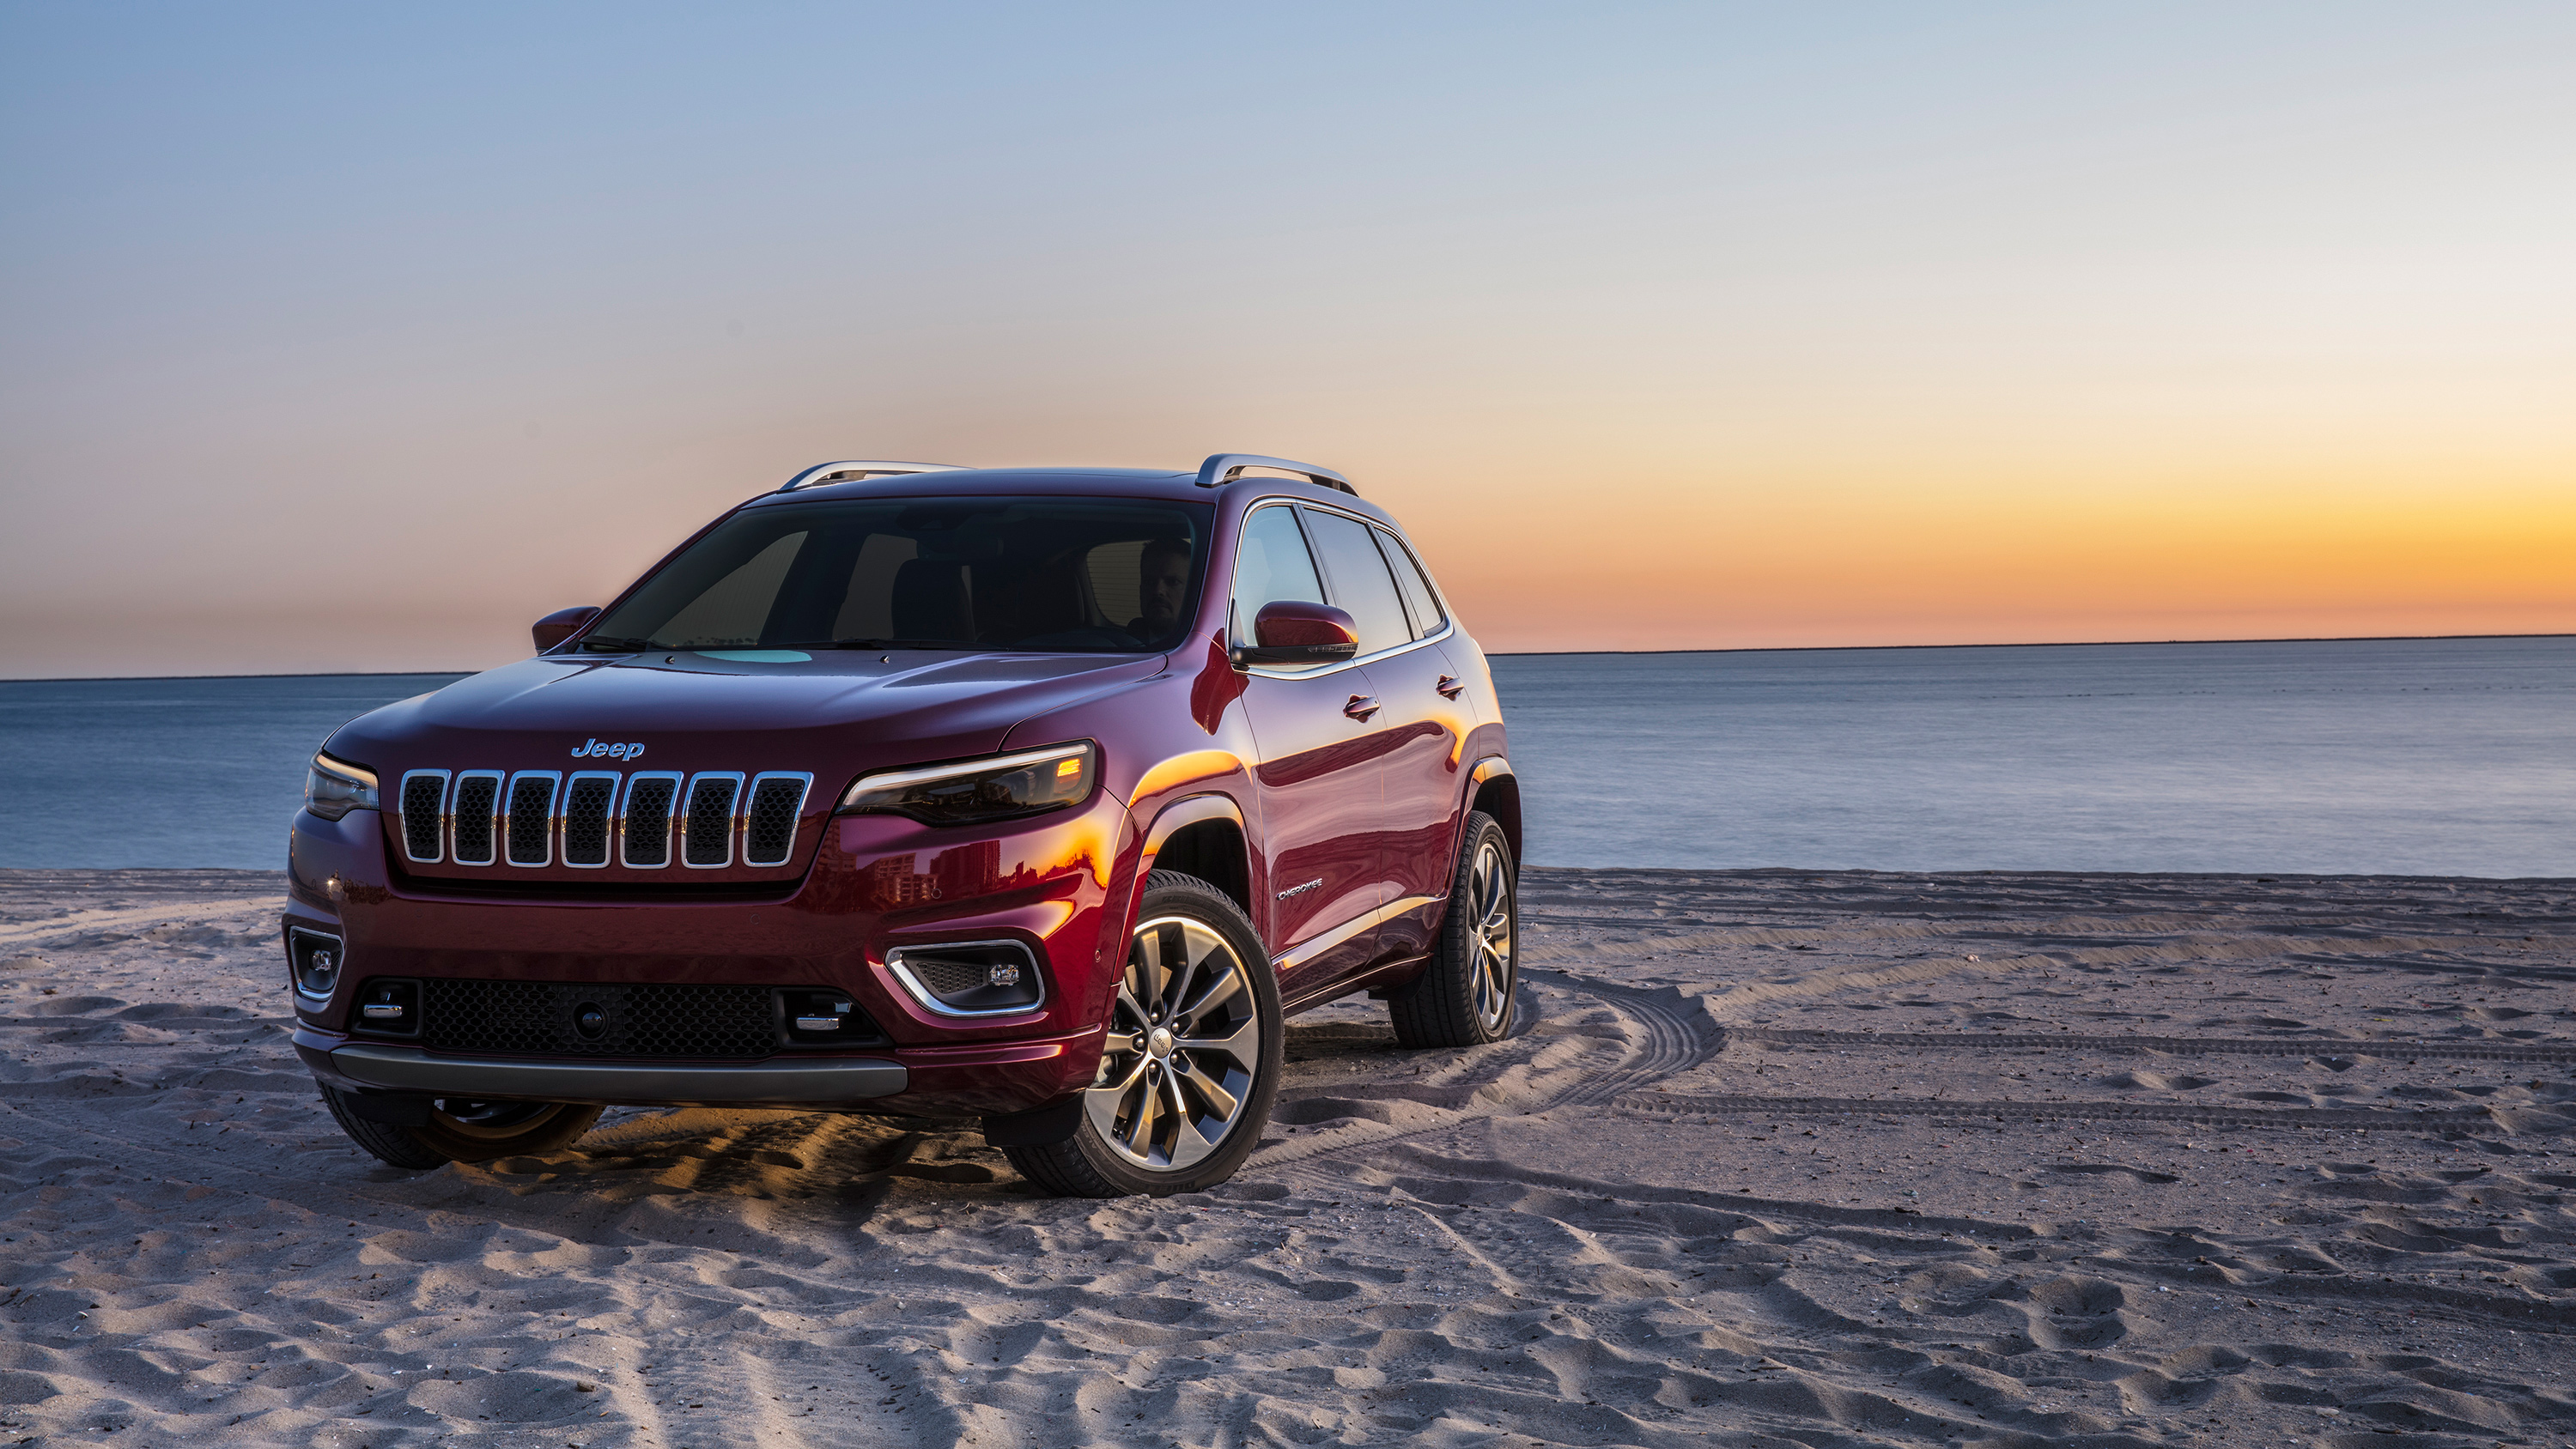 2018 jeep cherokee overland wallpaper hd car wallpapers. Black Bedroom Furniture Sets. Home Design Ideas